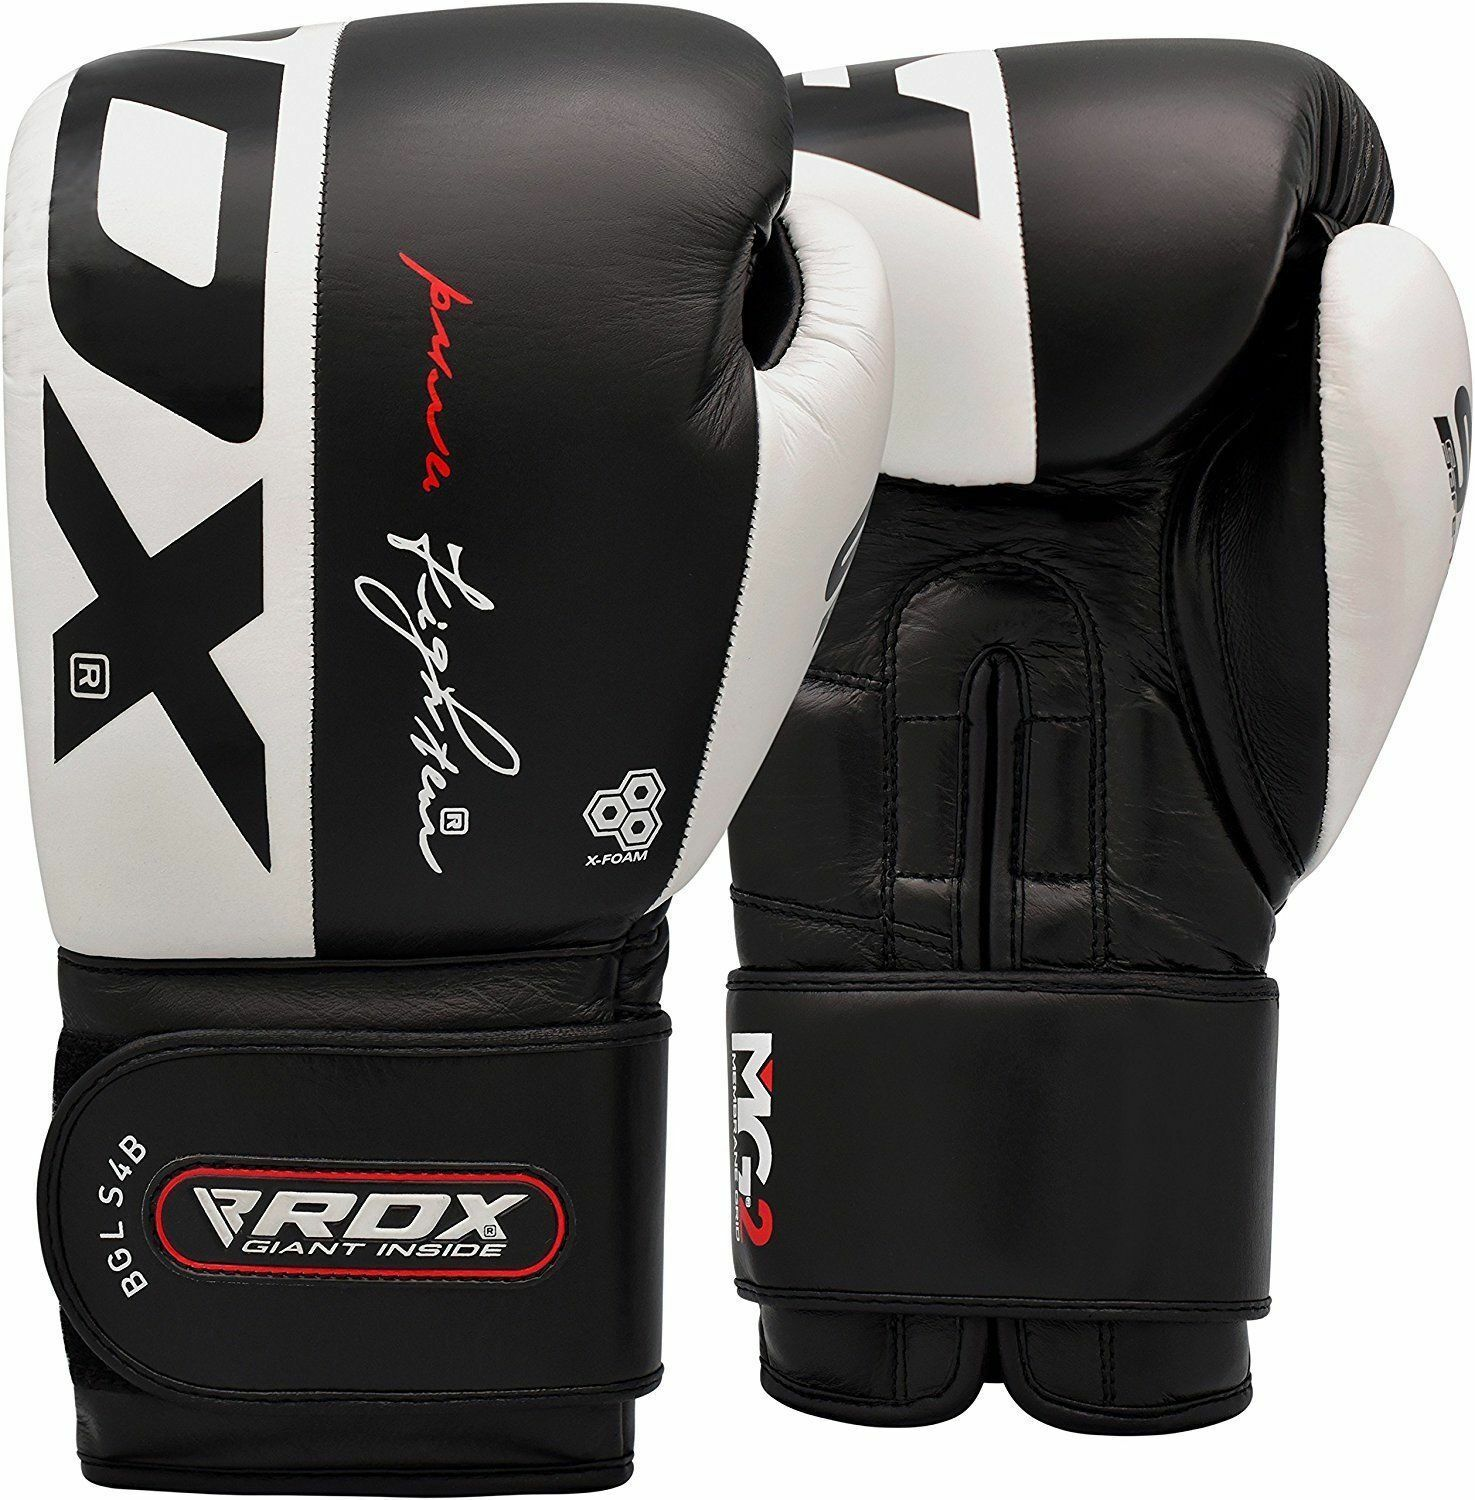 RDX Pro Boxing Sparring G s MMA Punch  Bag Mitt Fight Training  limit buy